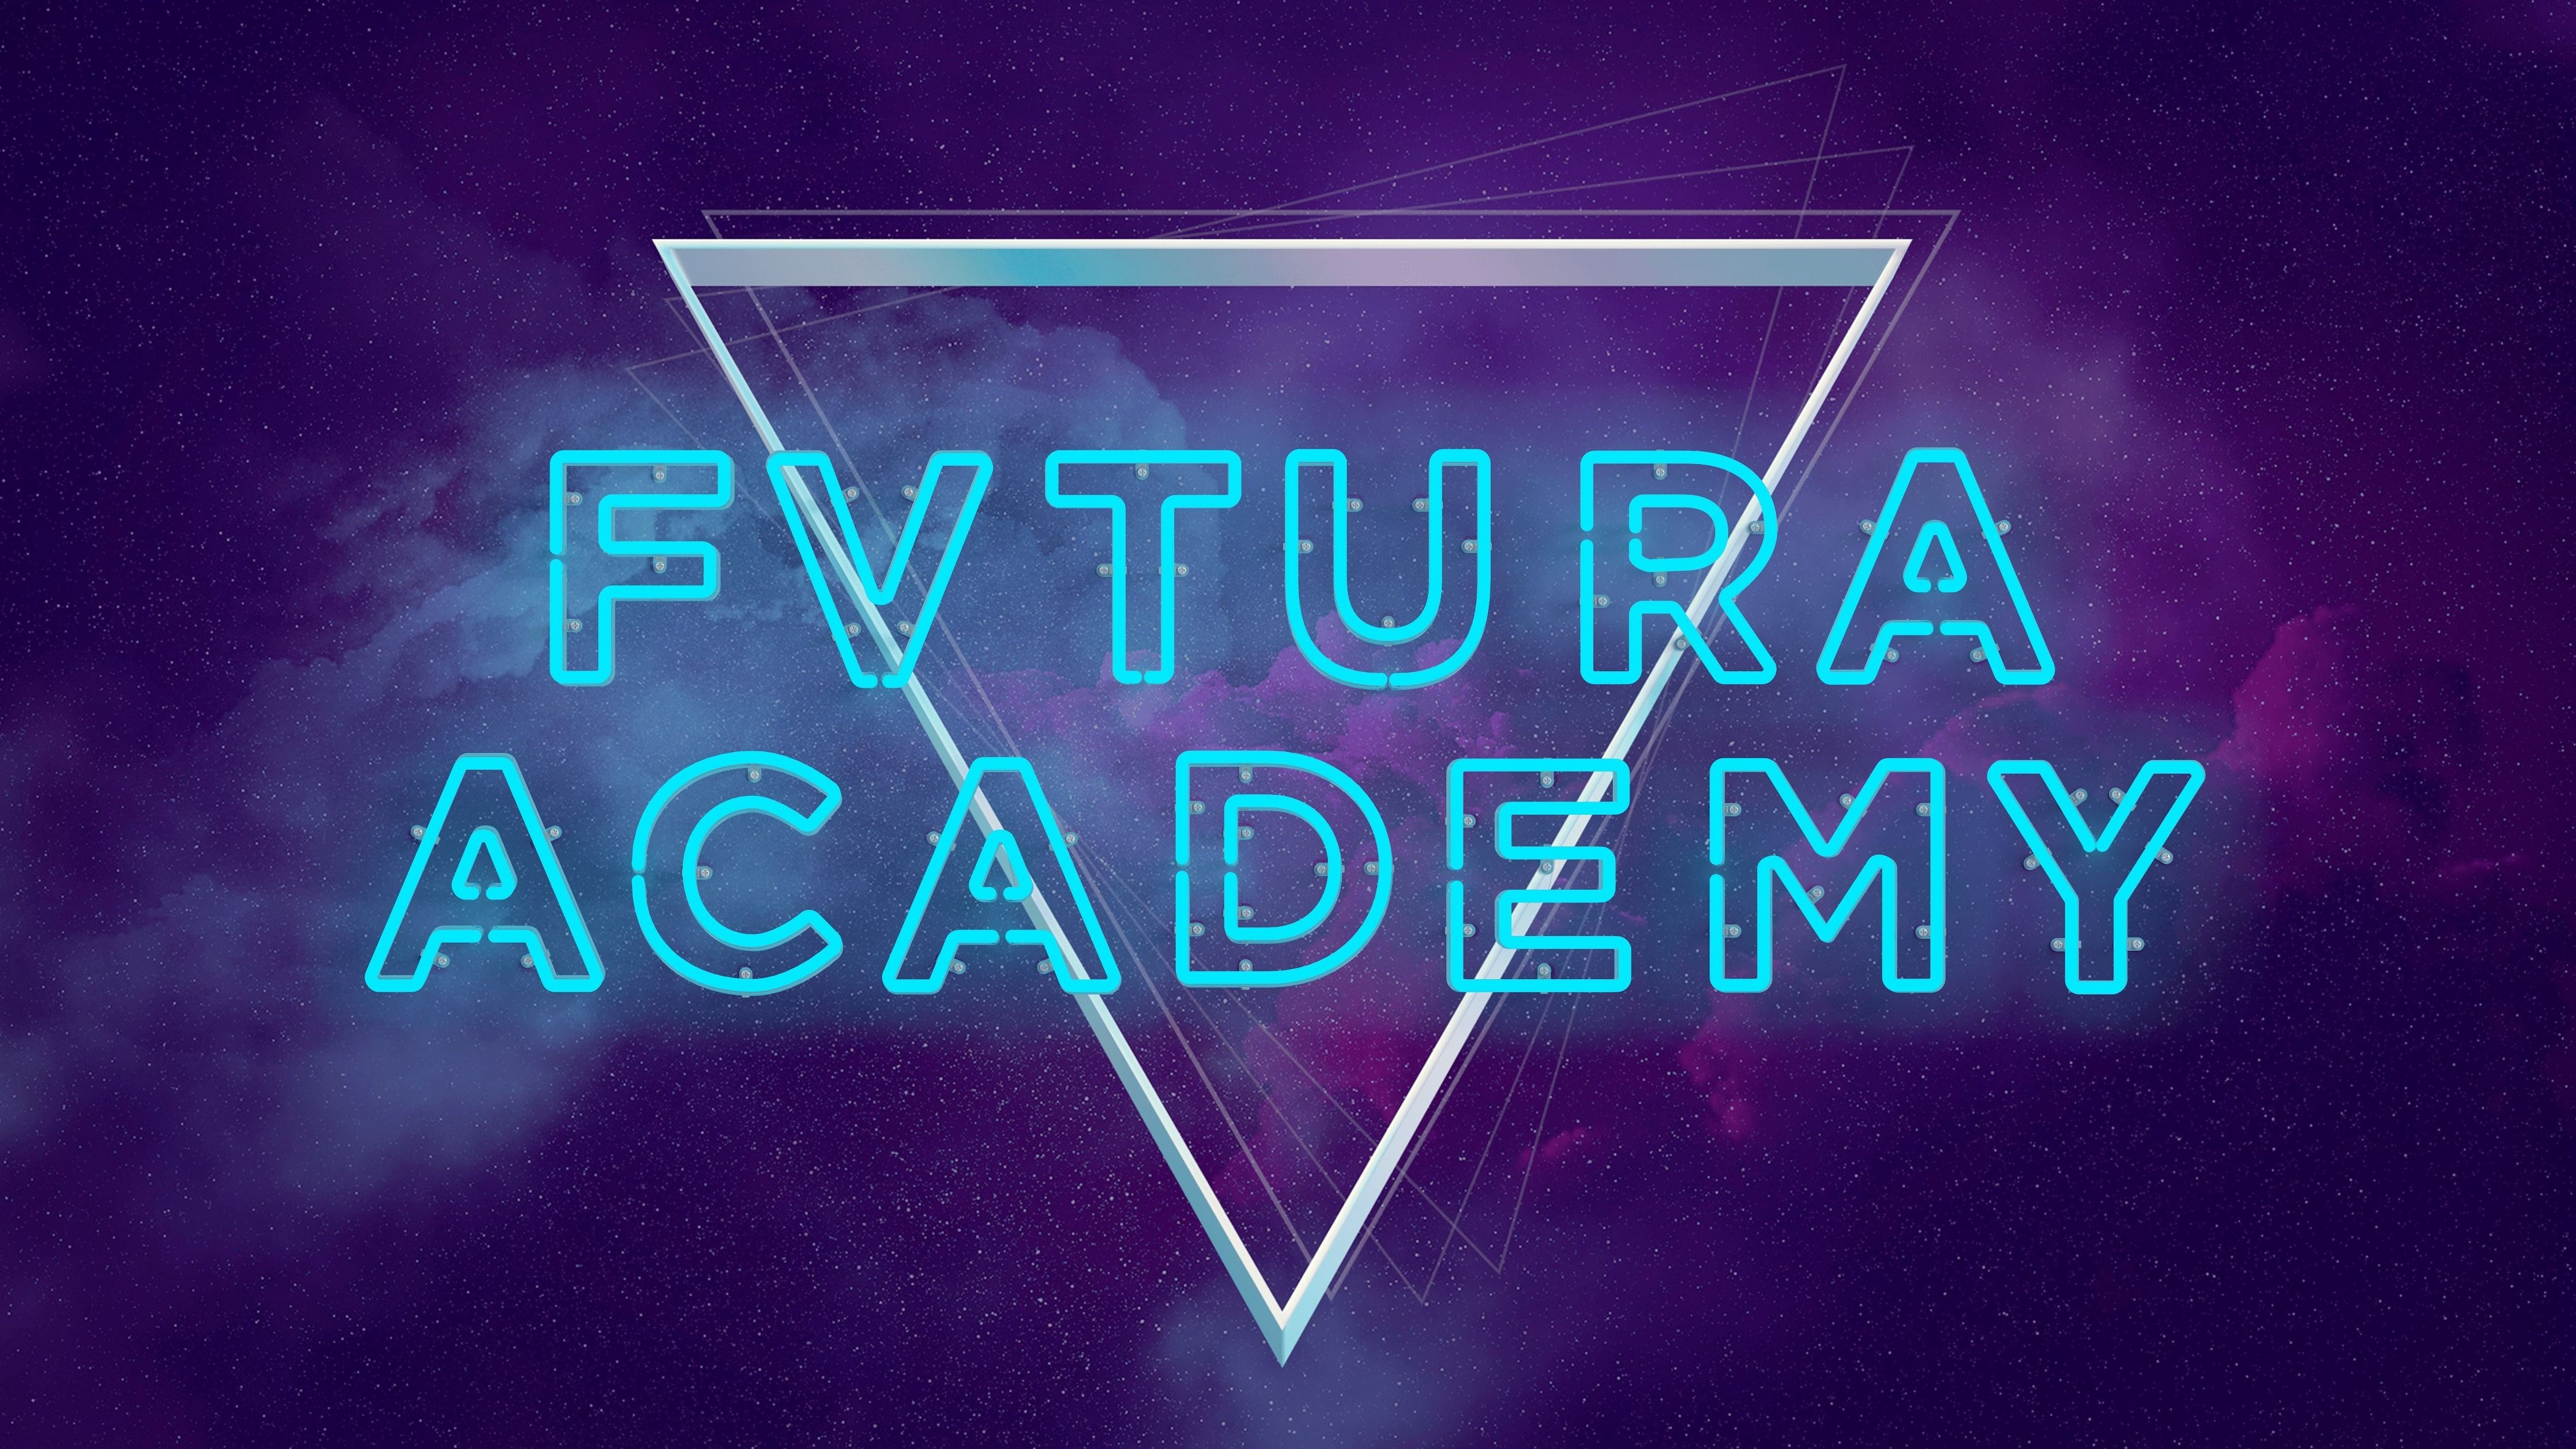 Fvtura Academy - Education and Practical Skills